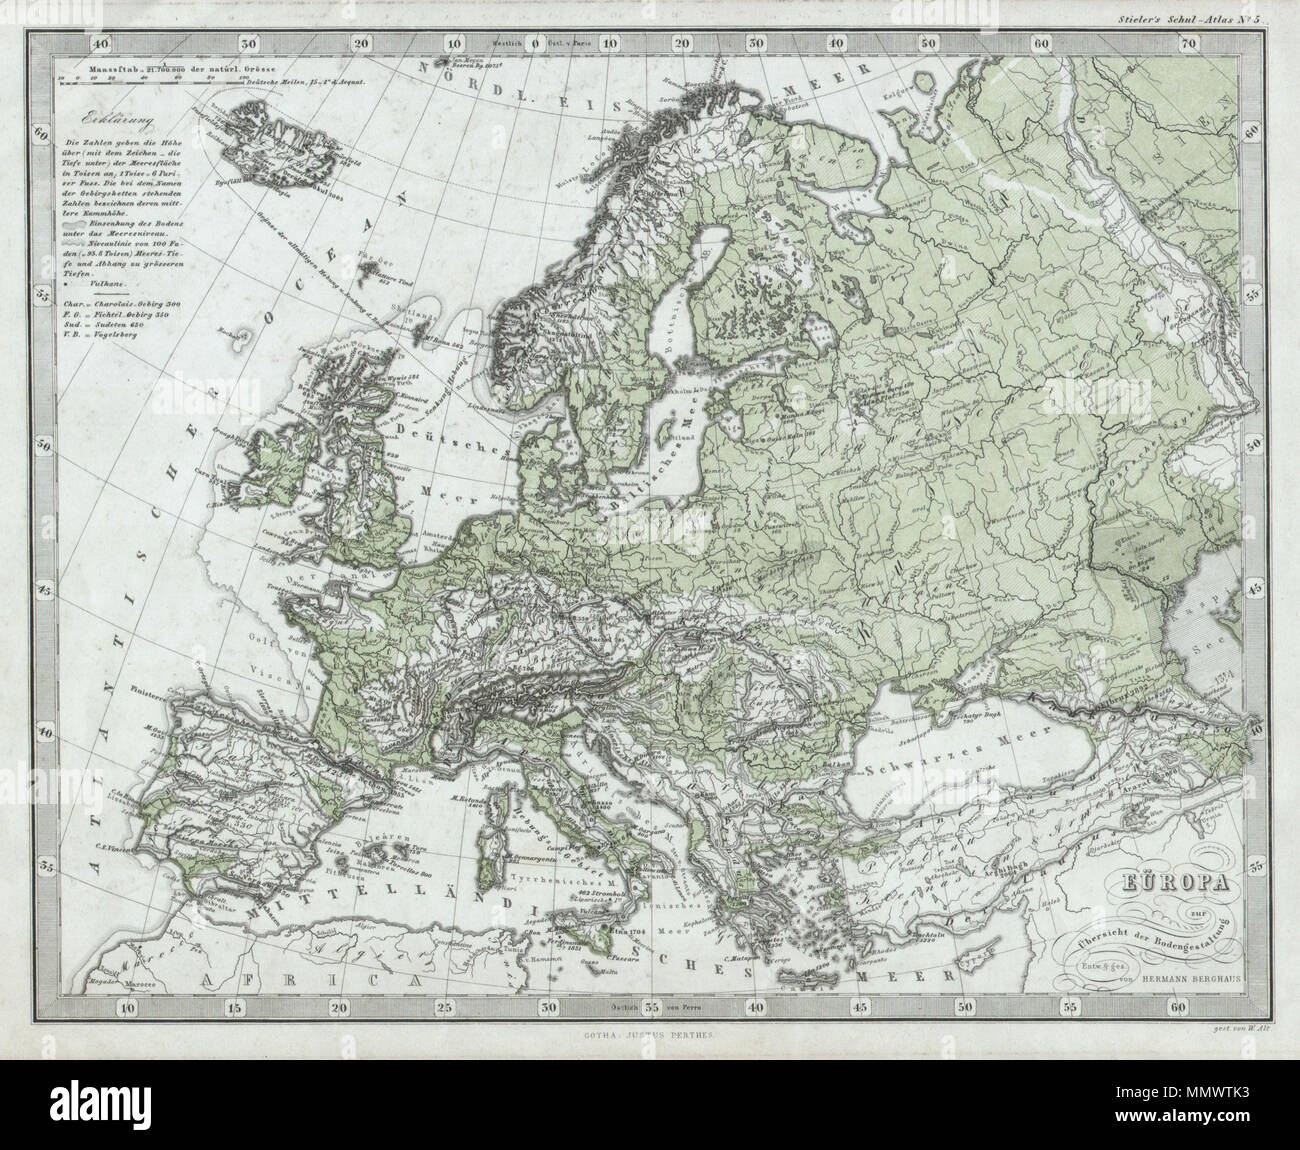 Image of: English This Fascinating 1862 Map By Justus Perthes And Stieler Depicts Europe S Physical Geography Although Major Cities Are Labeled Political Distinctions Are Not Unlike Other Cartographic Publishers Of The Period The